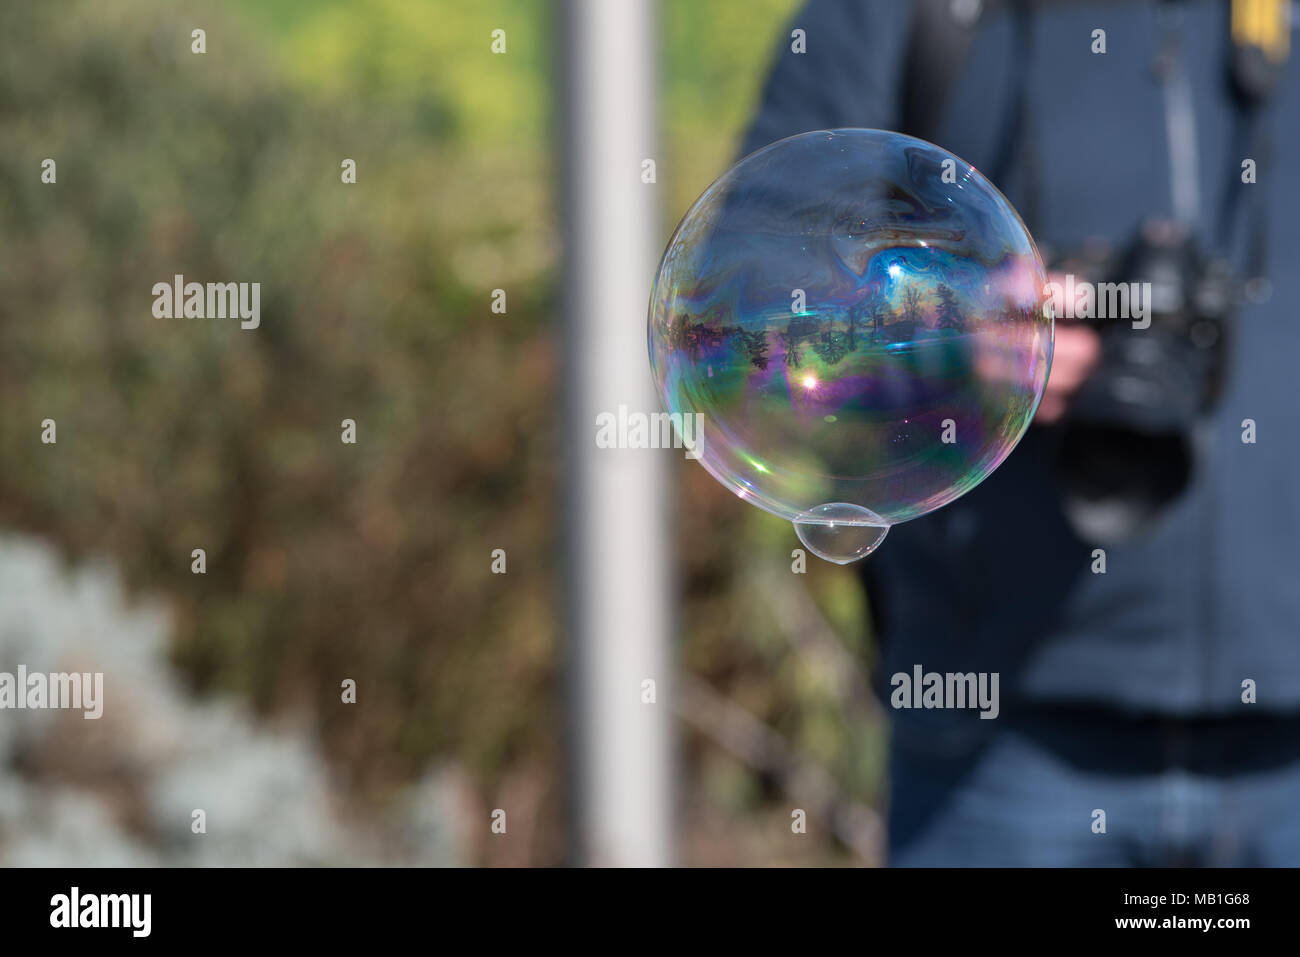 Bubble With Reflection Of Trees And Water And Person With Dslr In